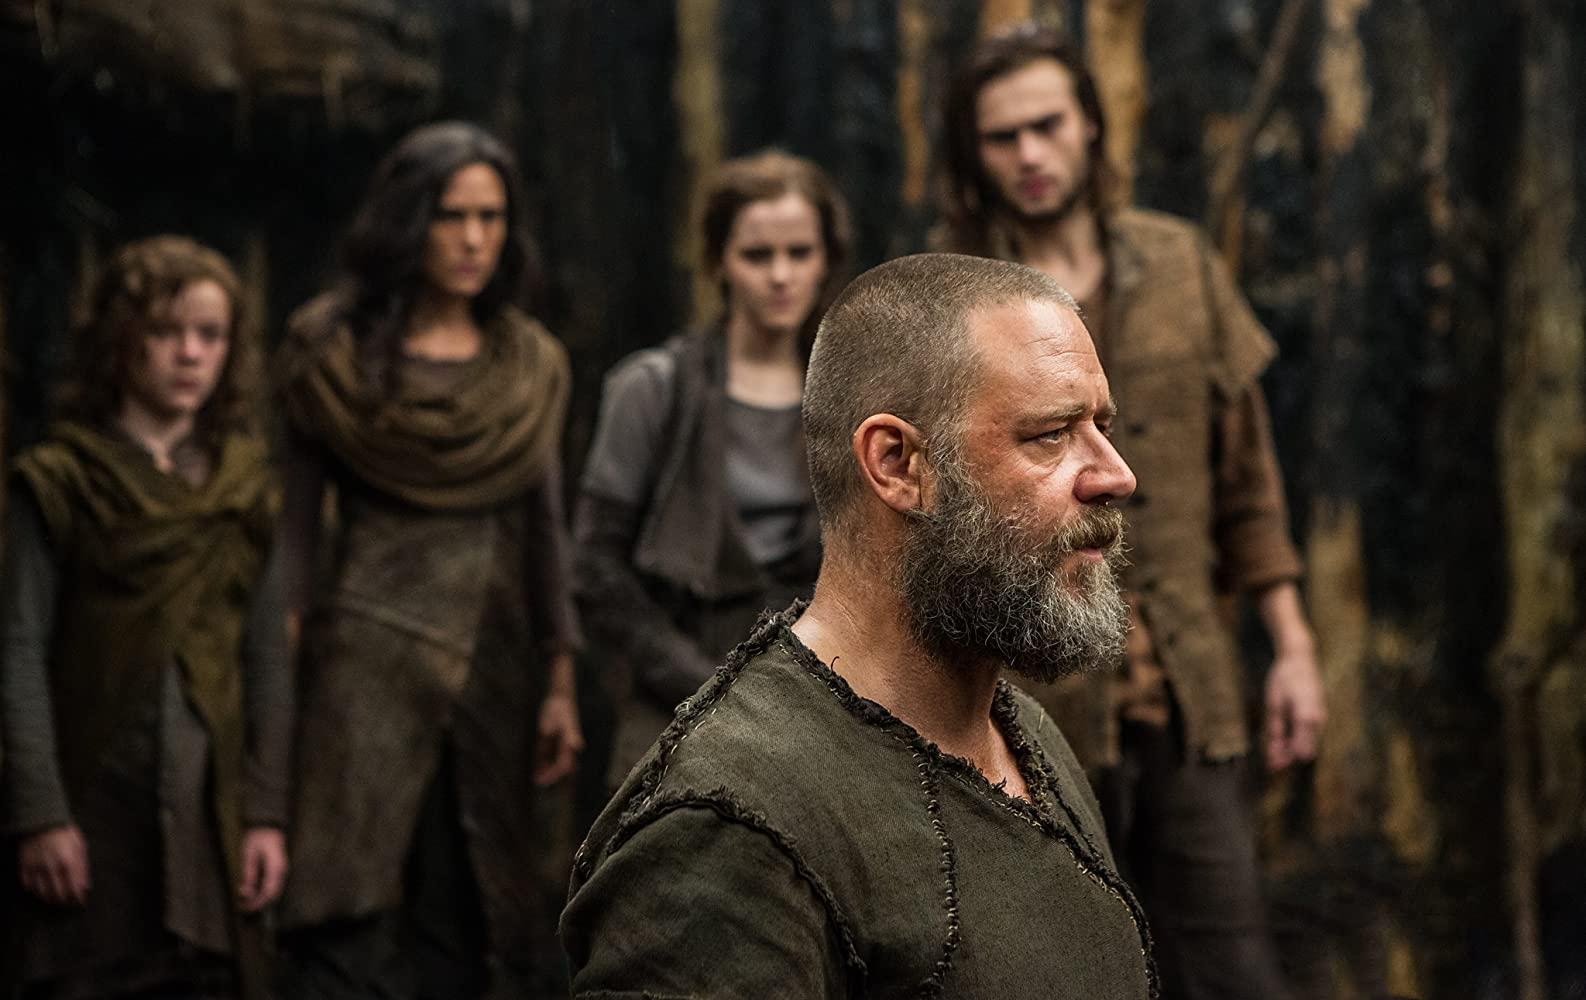 Jennifer Connelly, Russell Crowe, Emma Watson, Douglas Booth, and Leo McHugh Carroll in Noah (2014)